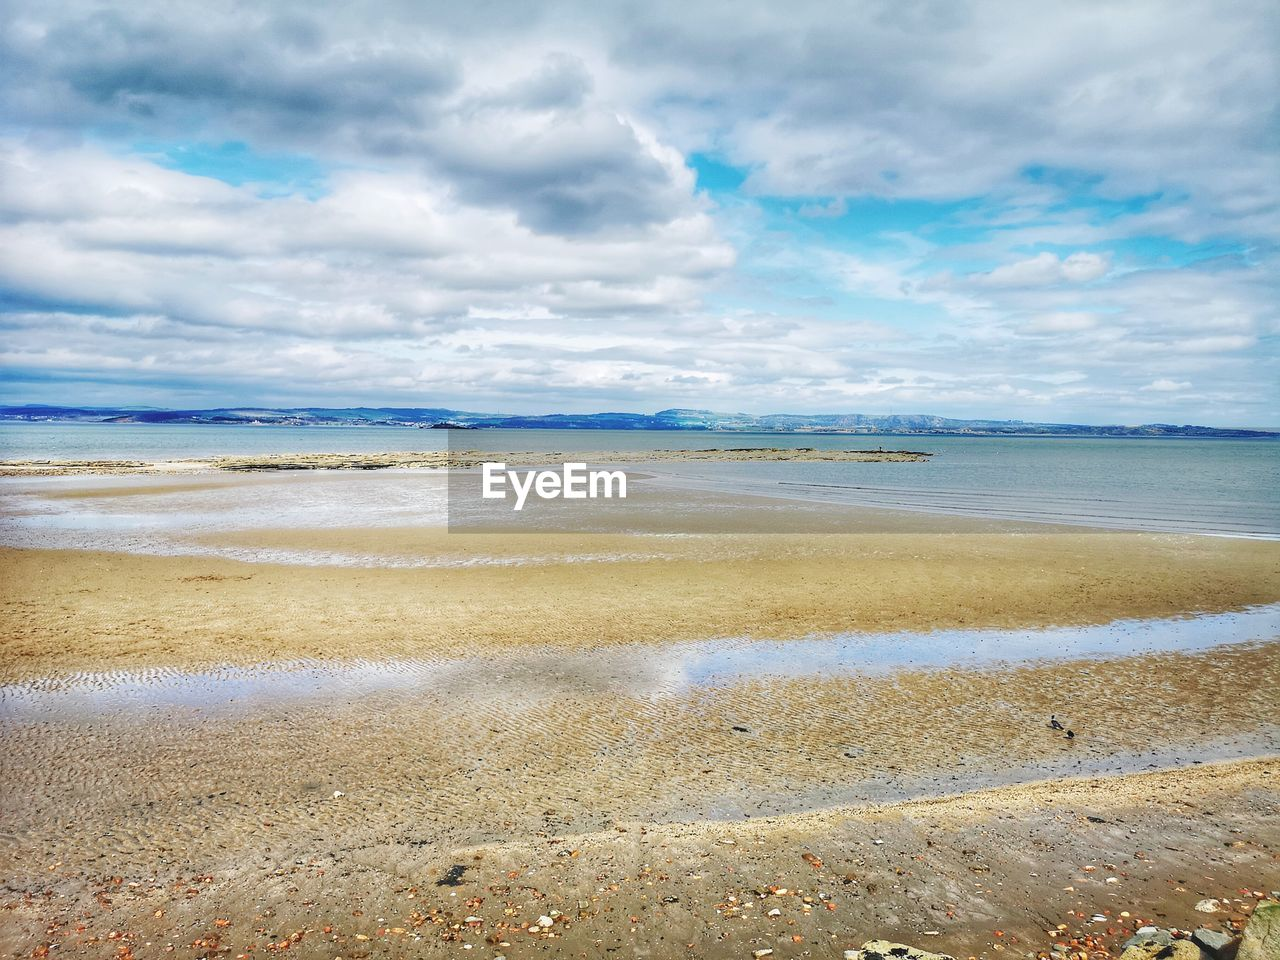 beach, cloud - sky, water, sky, land, sea, scenics - nature, beauty in nature, tranquil scene, tranquility, horizon over water, day, nature, horizon, sand, non-urban scene, no people, idyllic, wave, outdoors, low tide